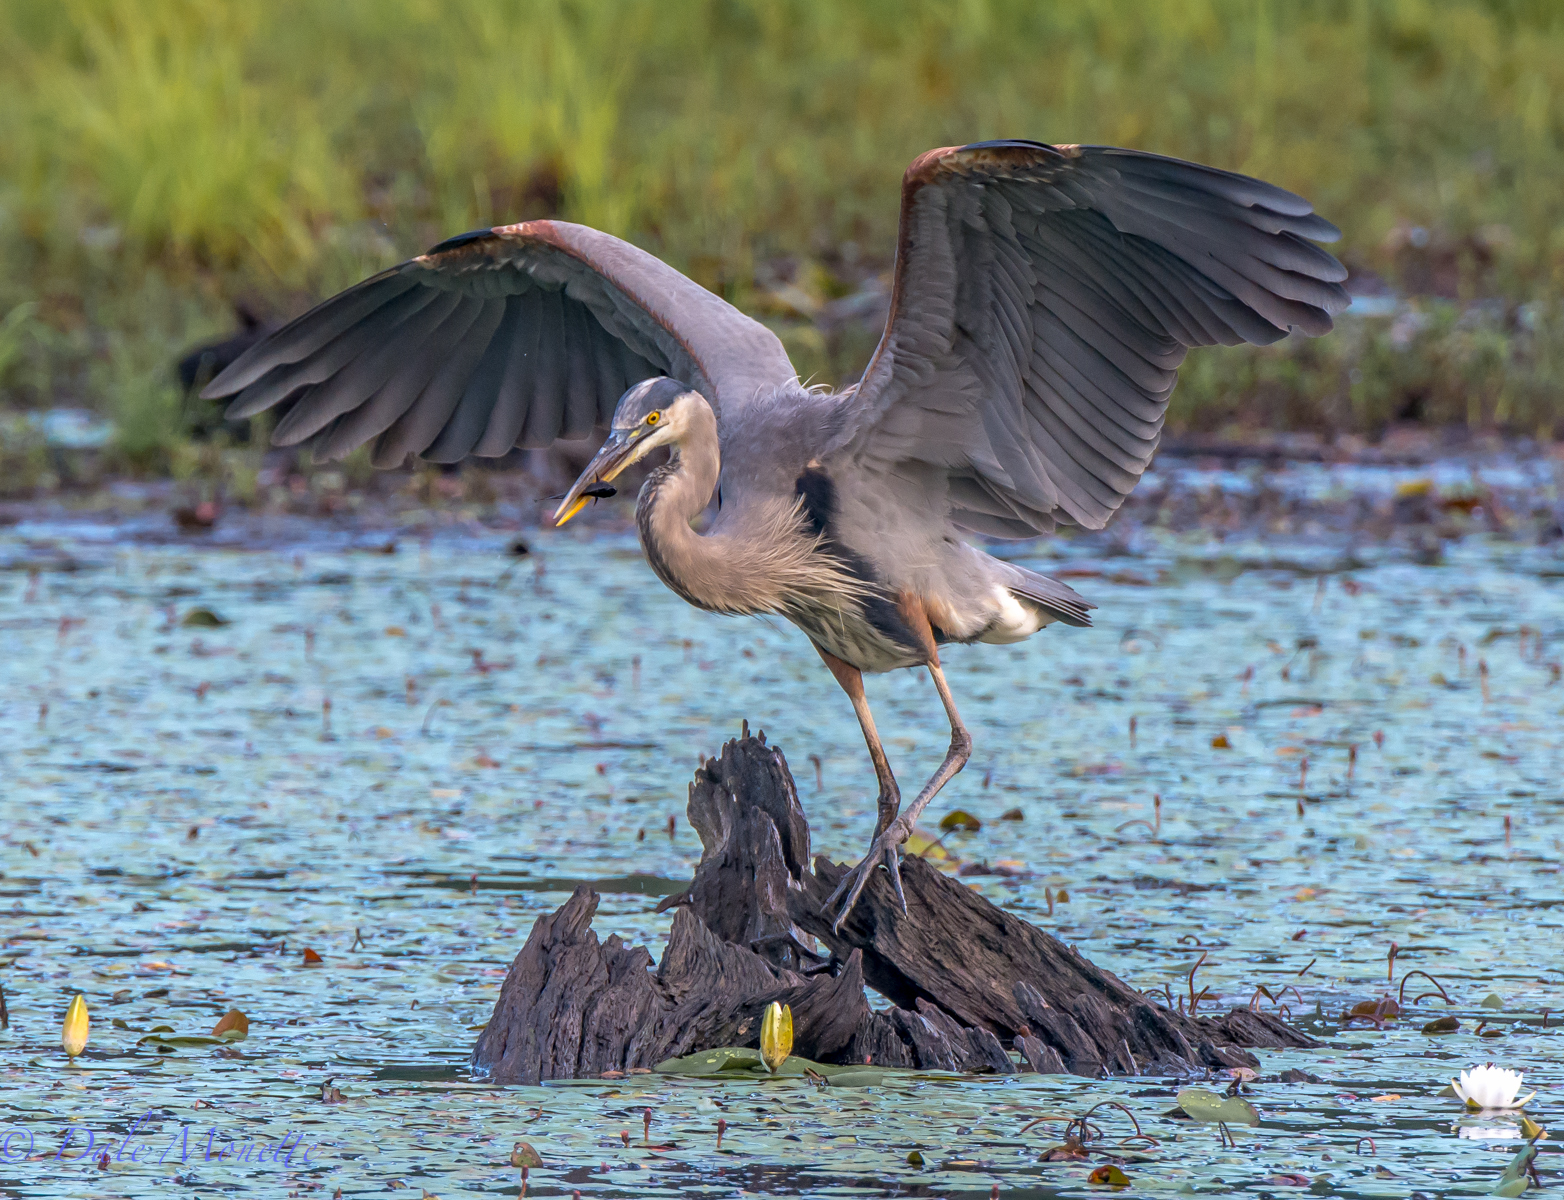 My handsome buddy Gwaark!  the great blue heron has another fish for breakfast today.  8/22/15